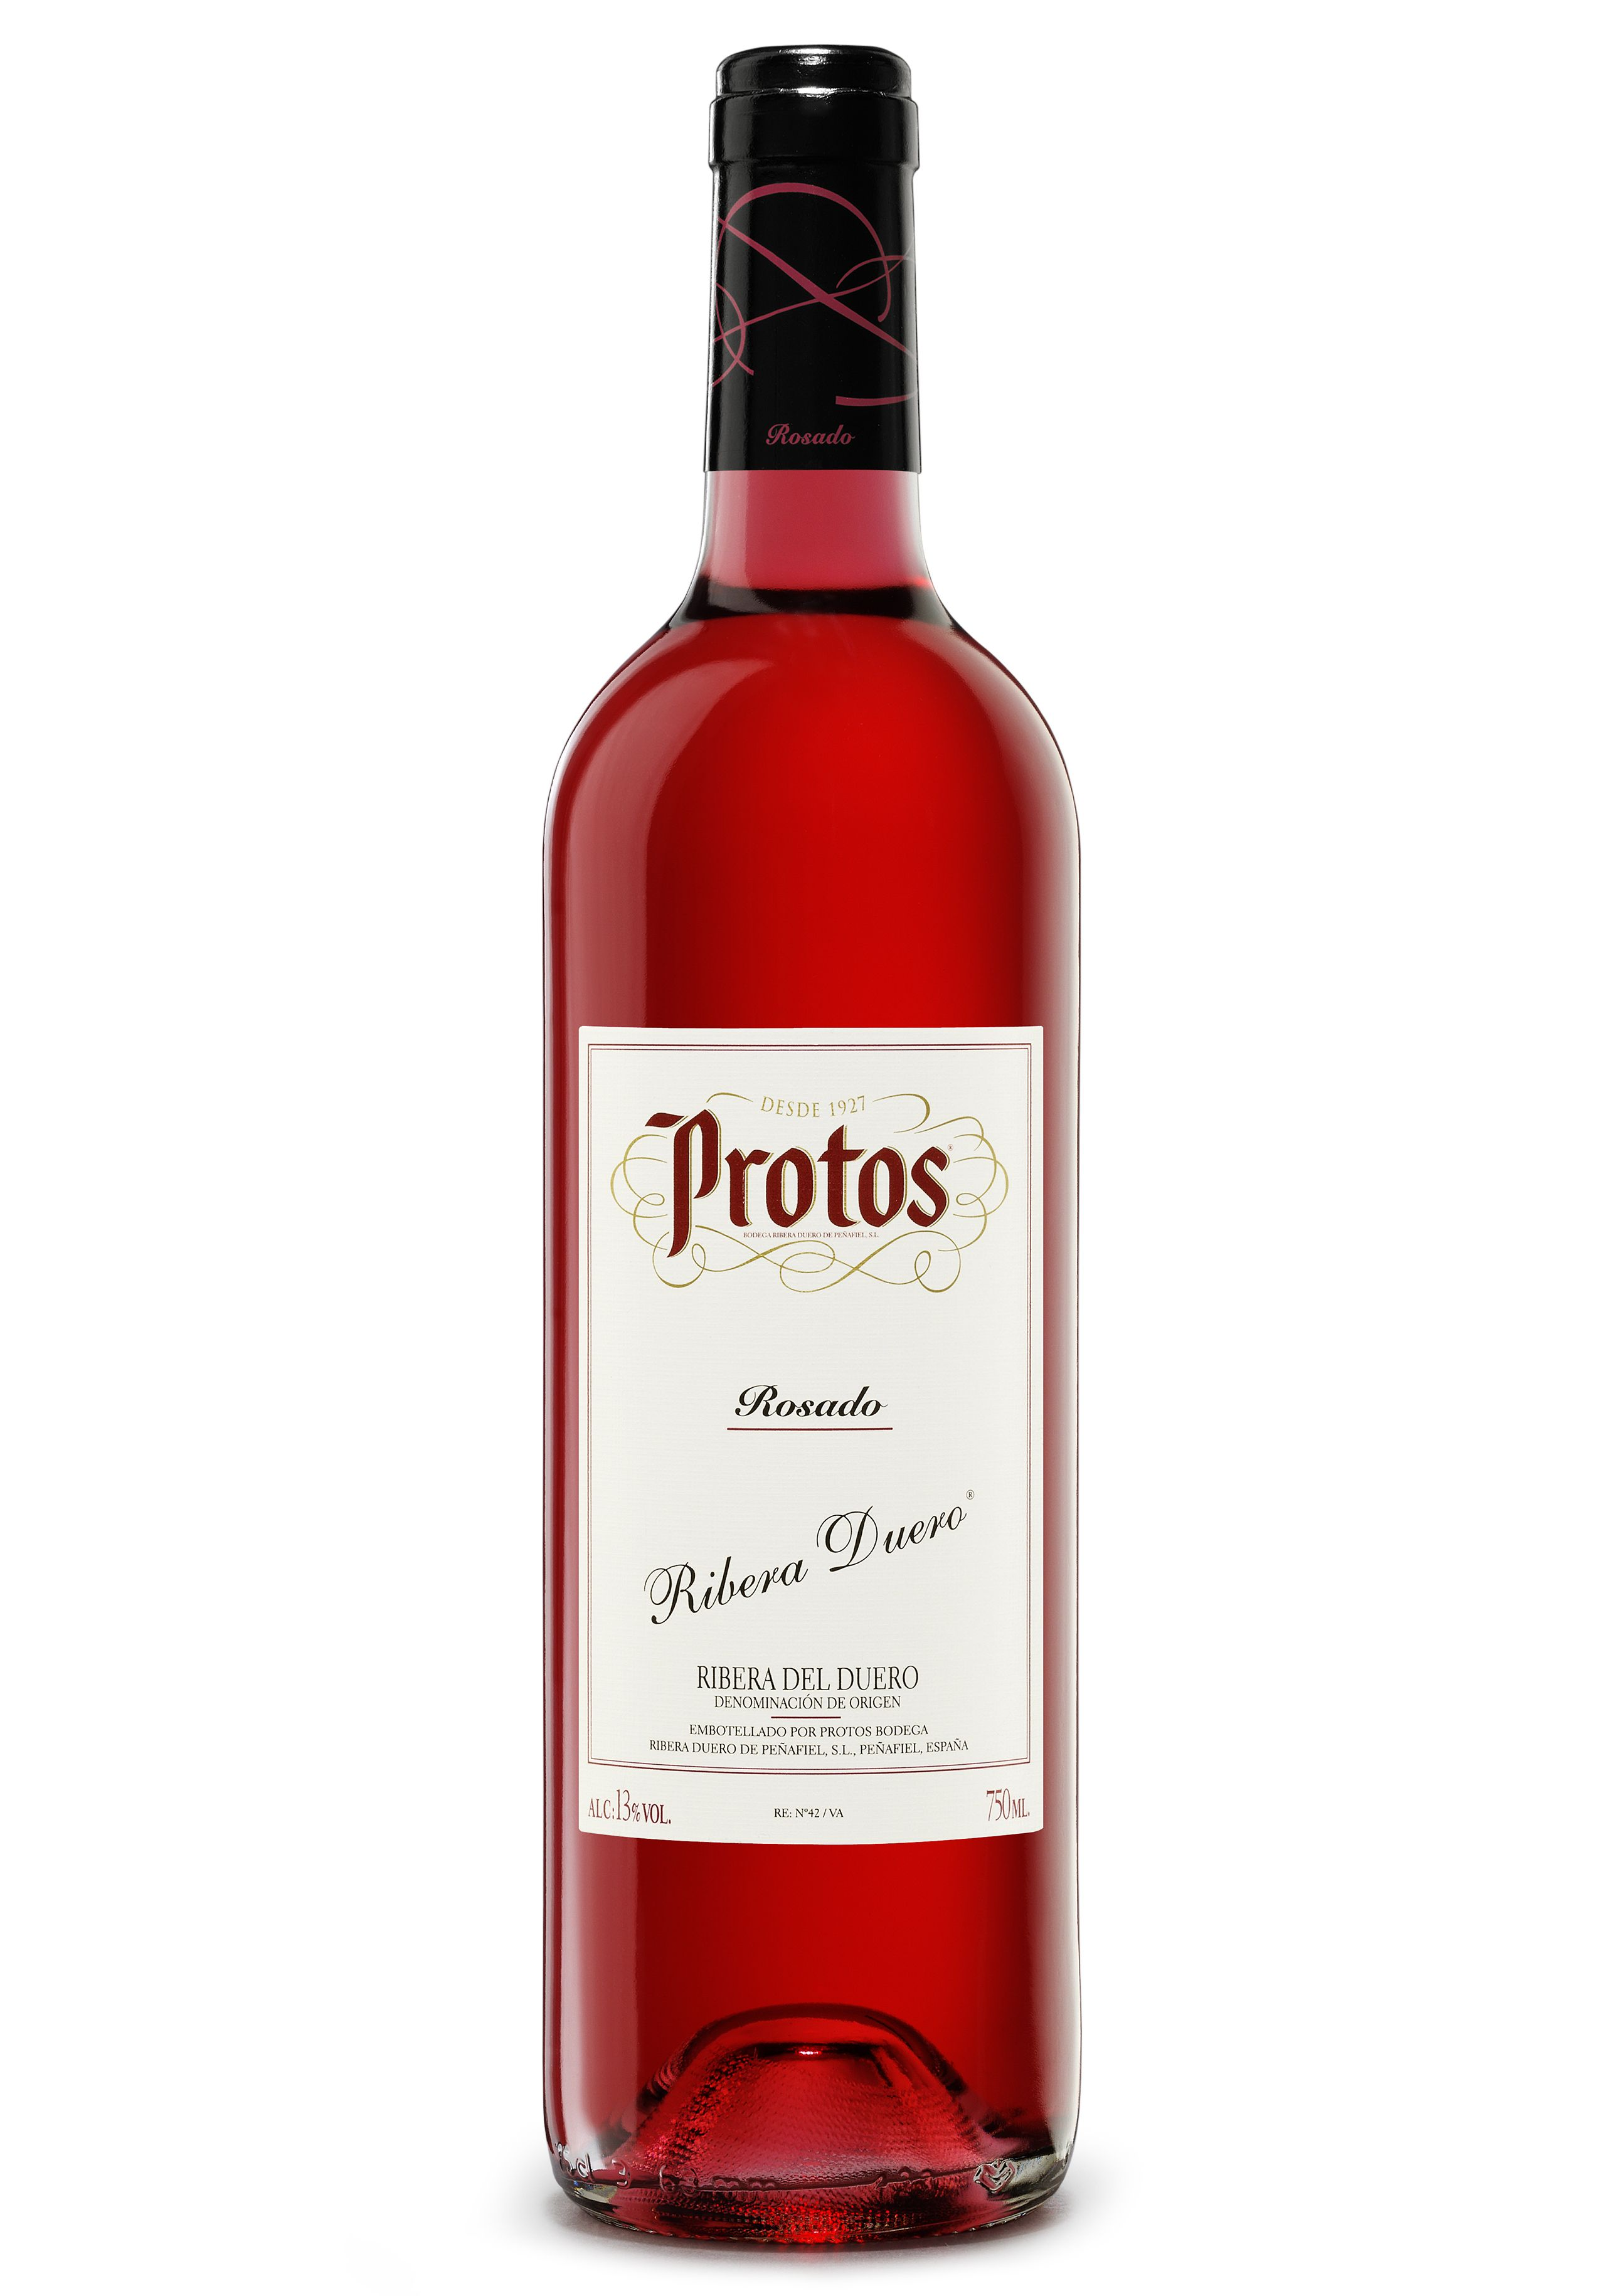 Protos Rosado Wine Spain Vinos Maximum Rosado Wine Vinhos Vinhos